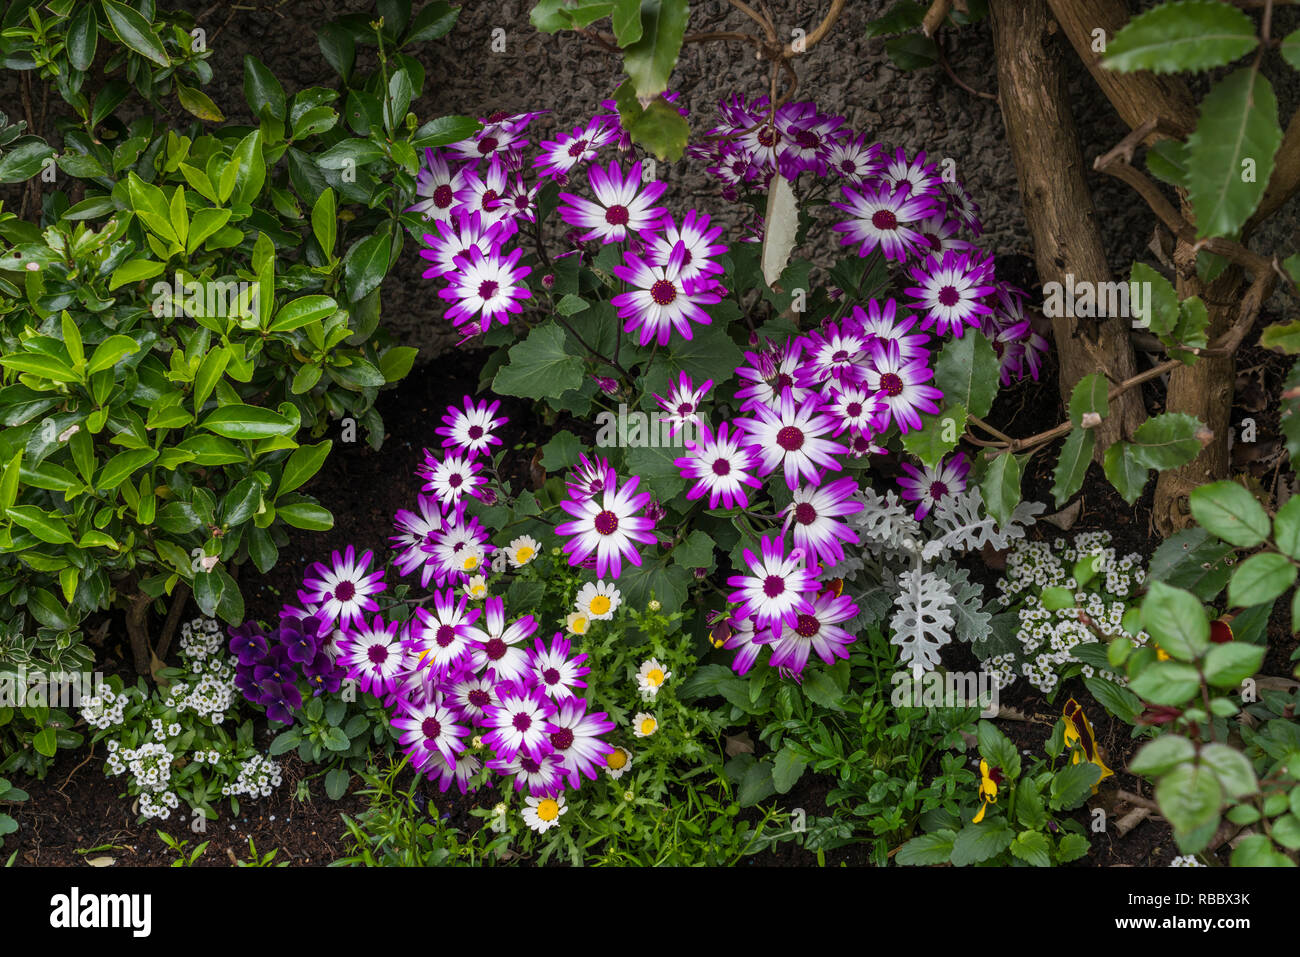 Closeup of garden flowers in Kirkwall, Orkney, Scotland, United Kingdom, Europe. - Stock Image